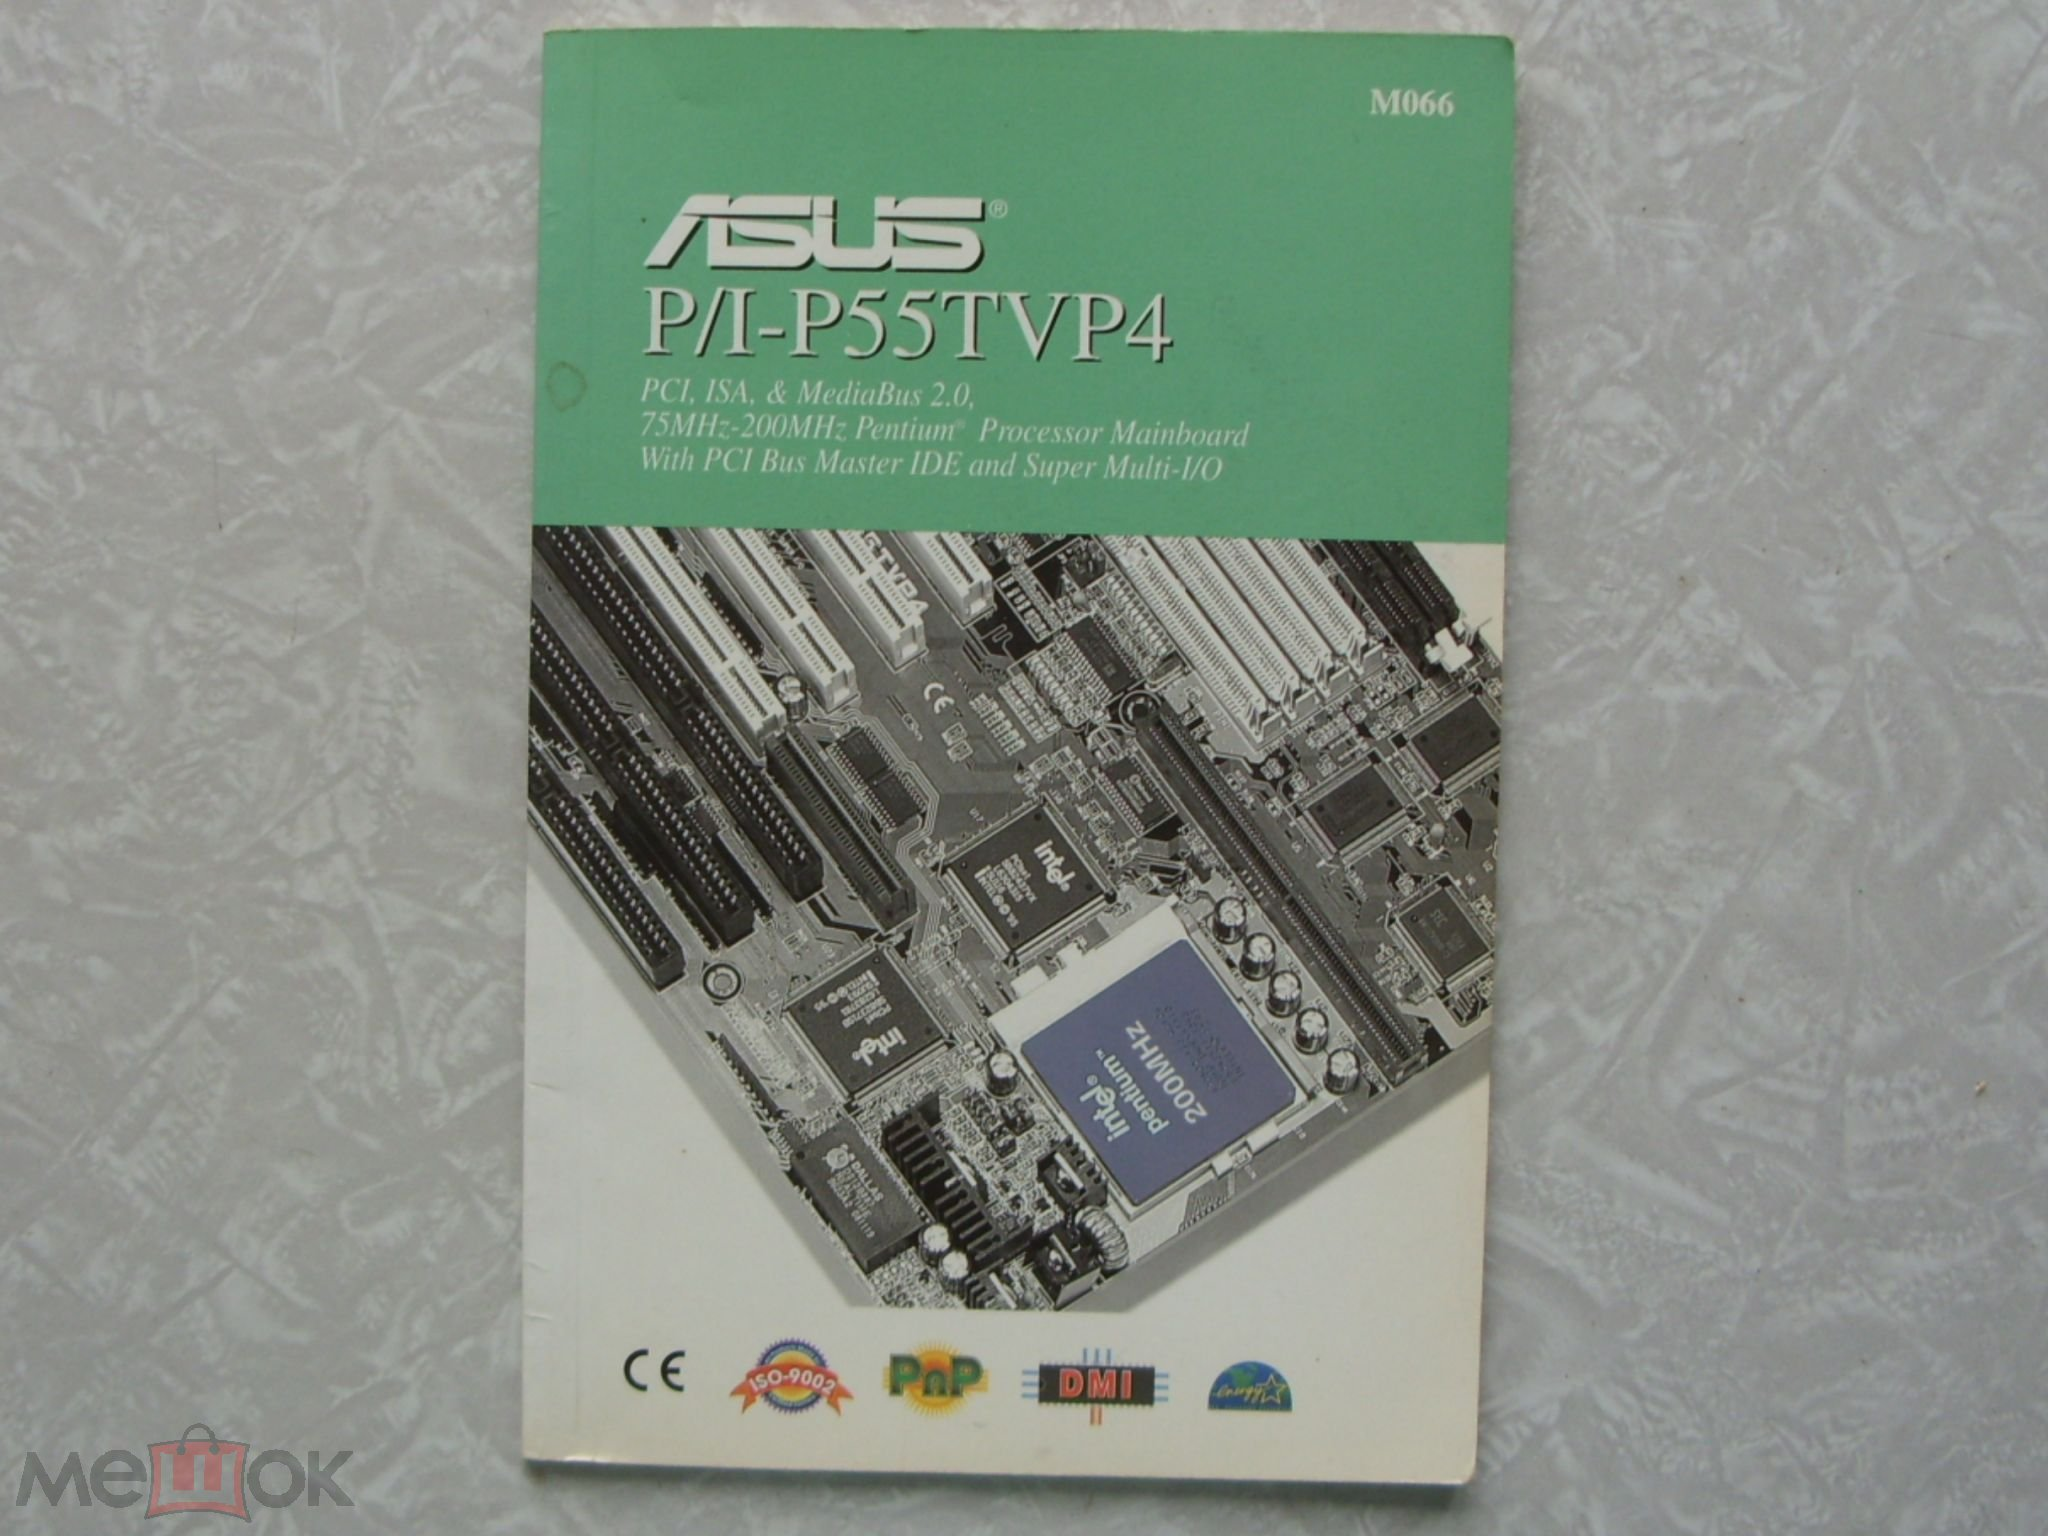 ASUS PI-P55TVP4 DRIVER FOR WINDOWS 7